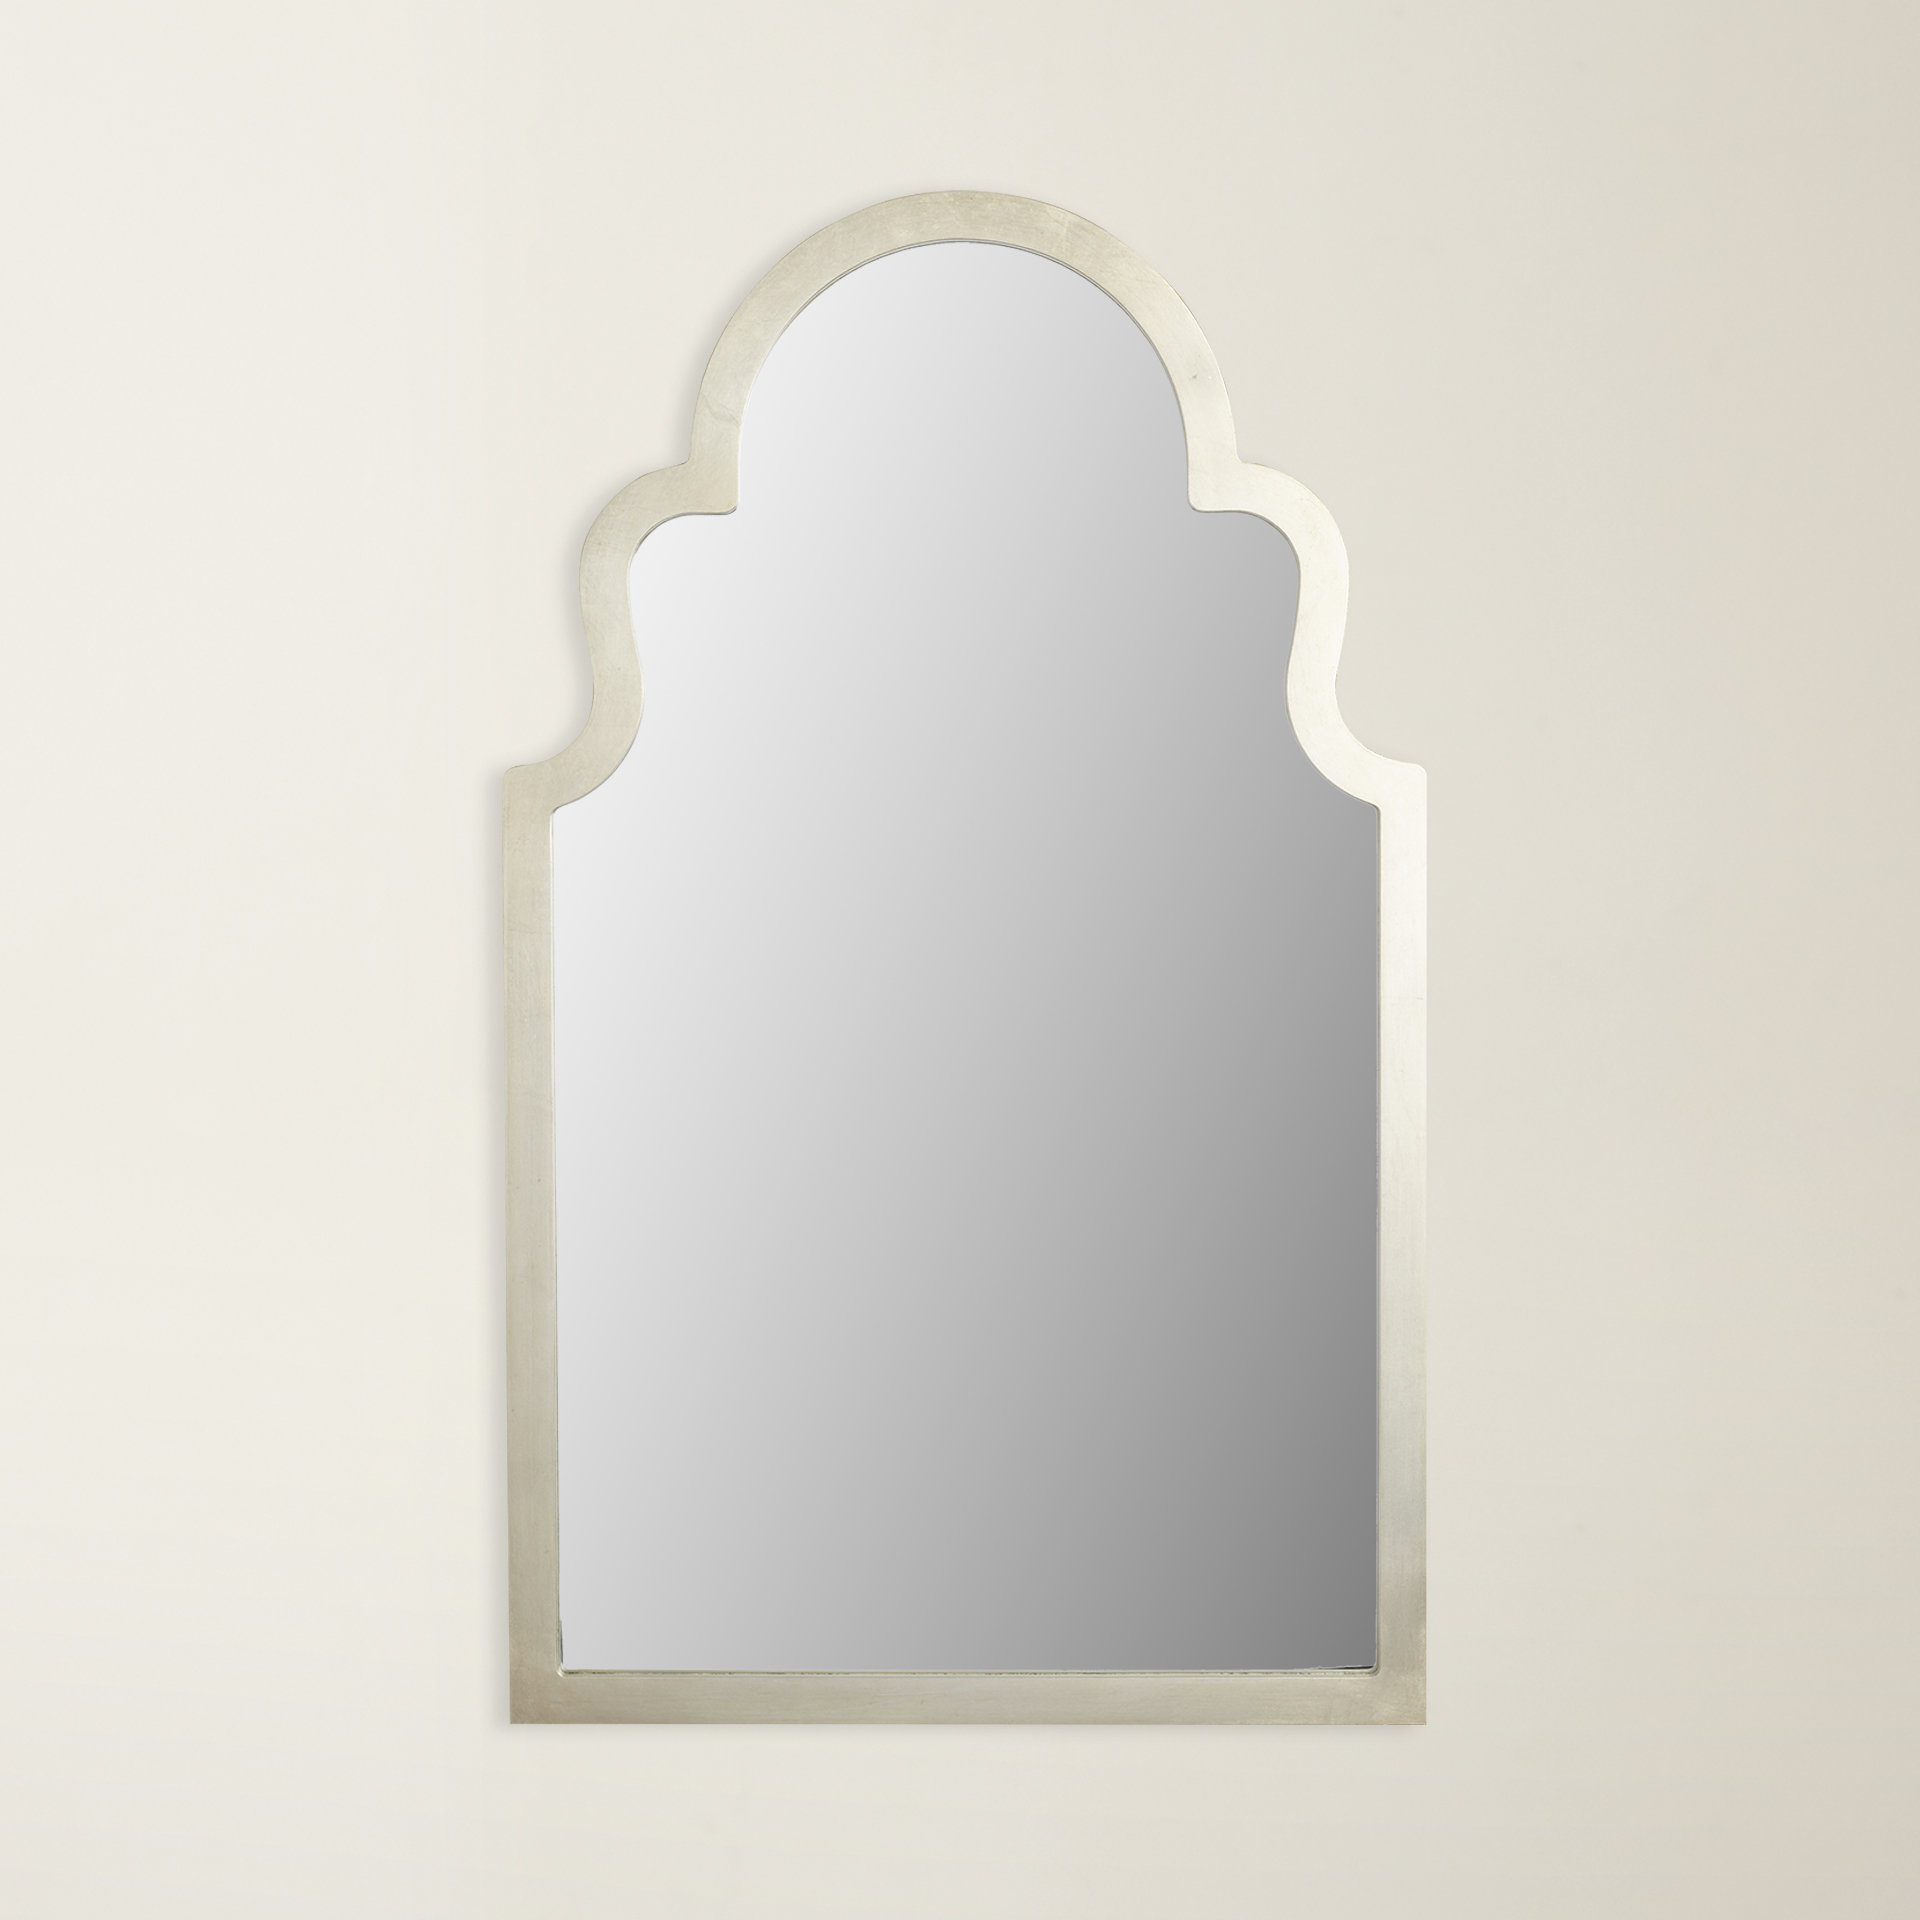 Arch Top Vertical Wall Mirror Intended For Well Liked Arch Vertical Wall Mirrors (Gallery 8 of 20)